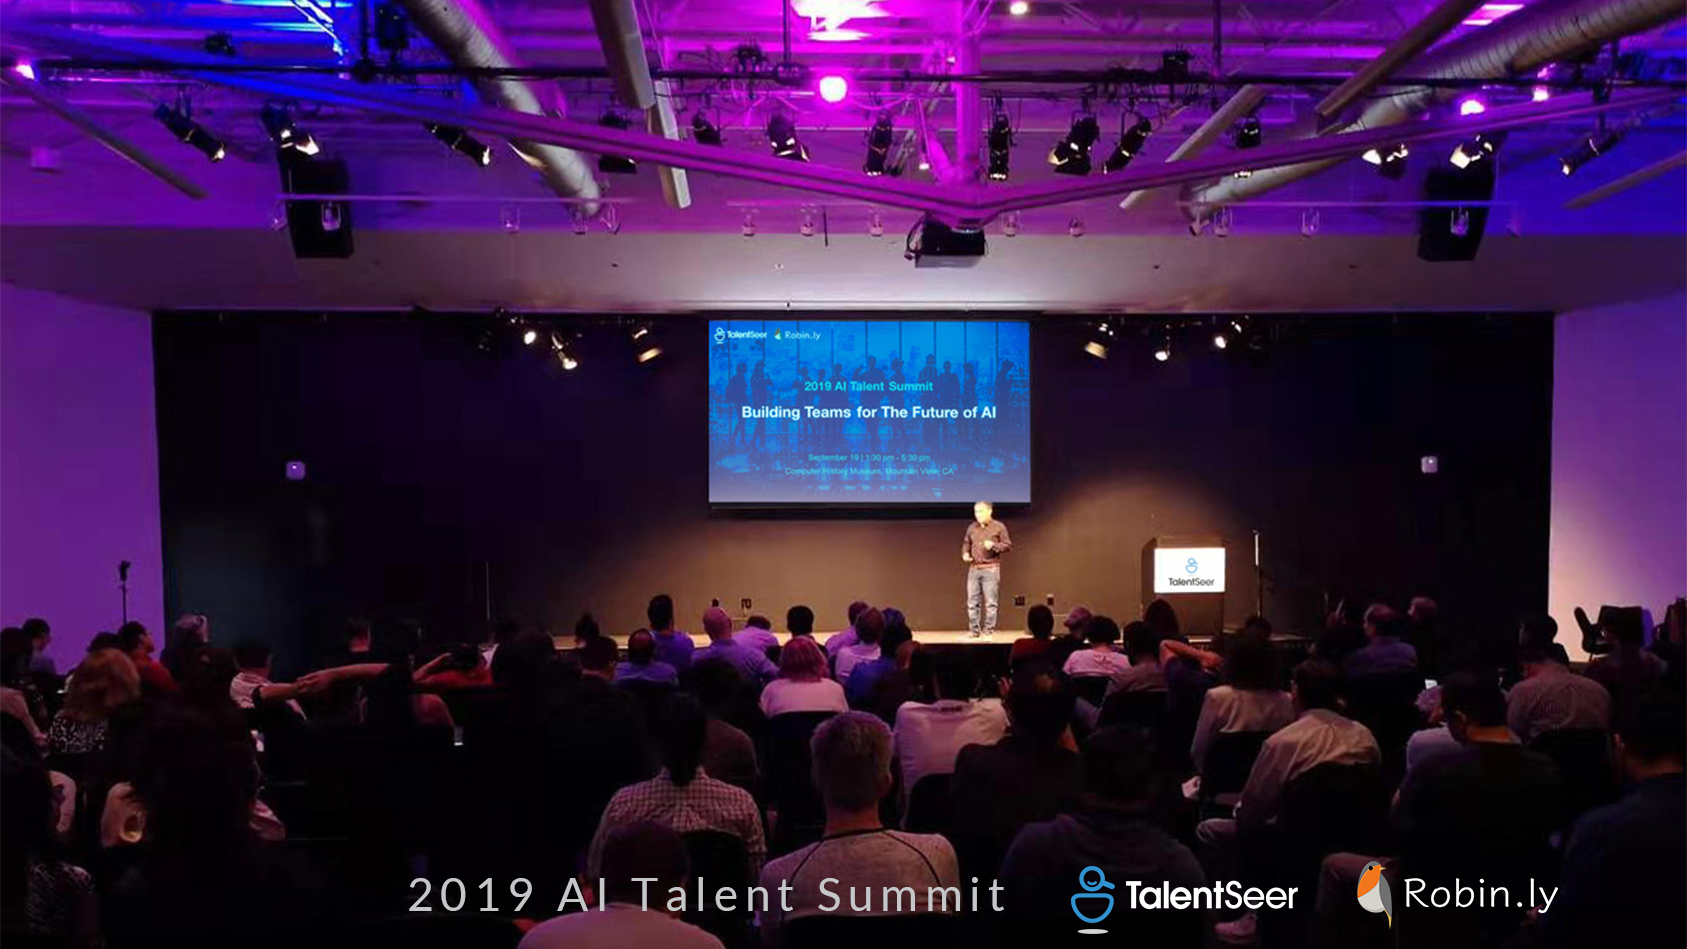 2019 AI Talent Summit Highlights: Building Teams for The Future of AI